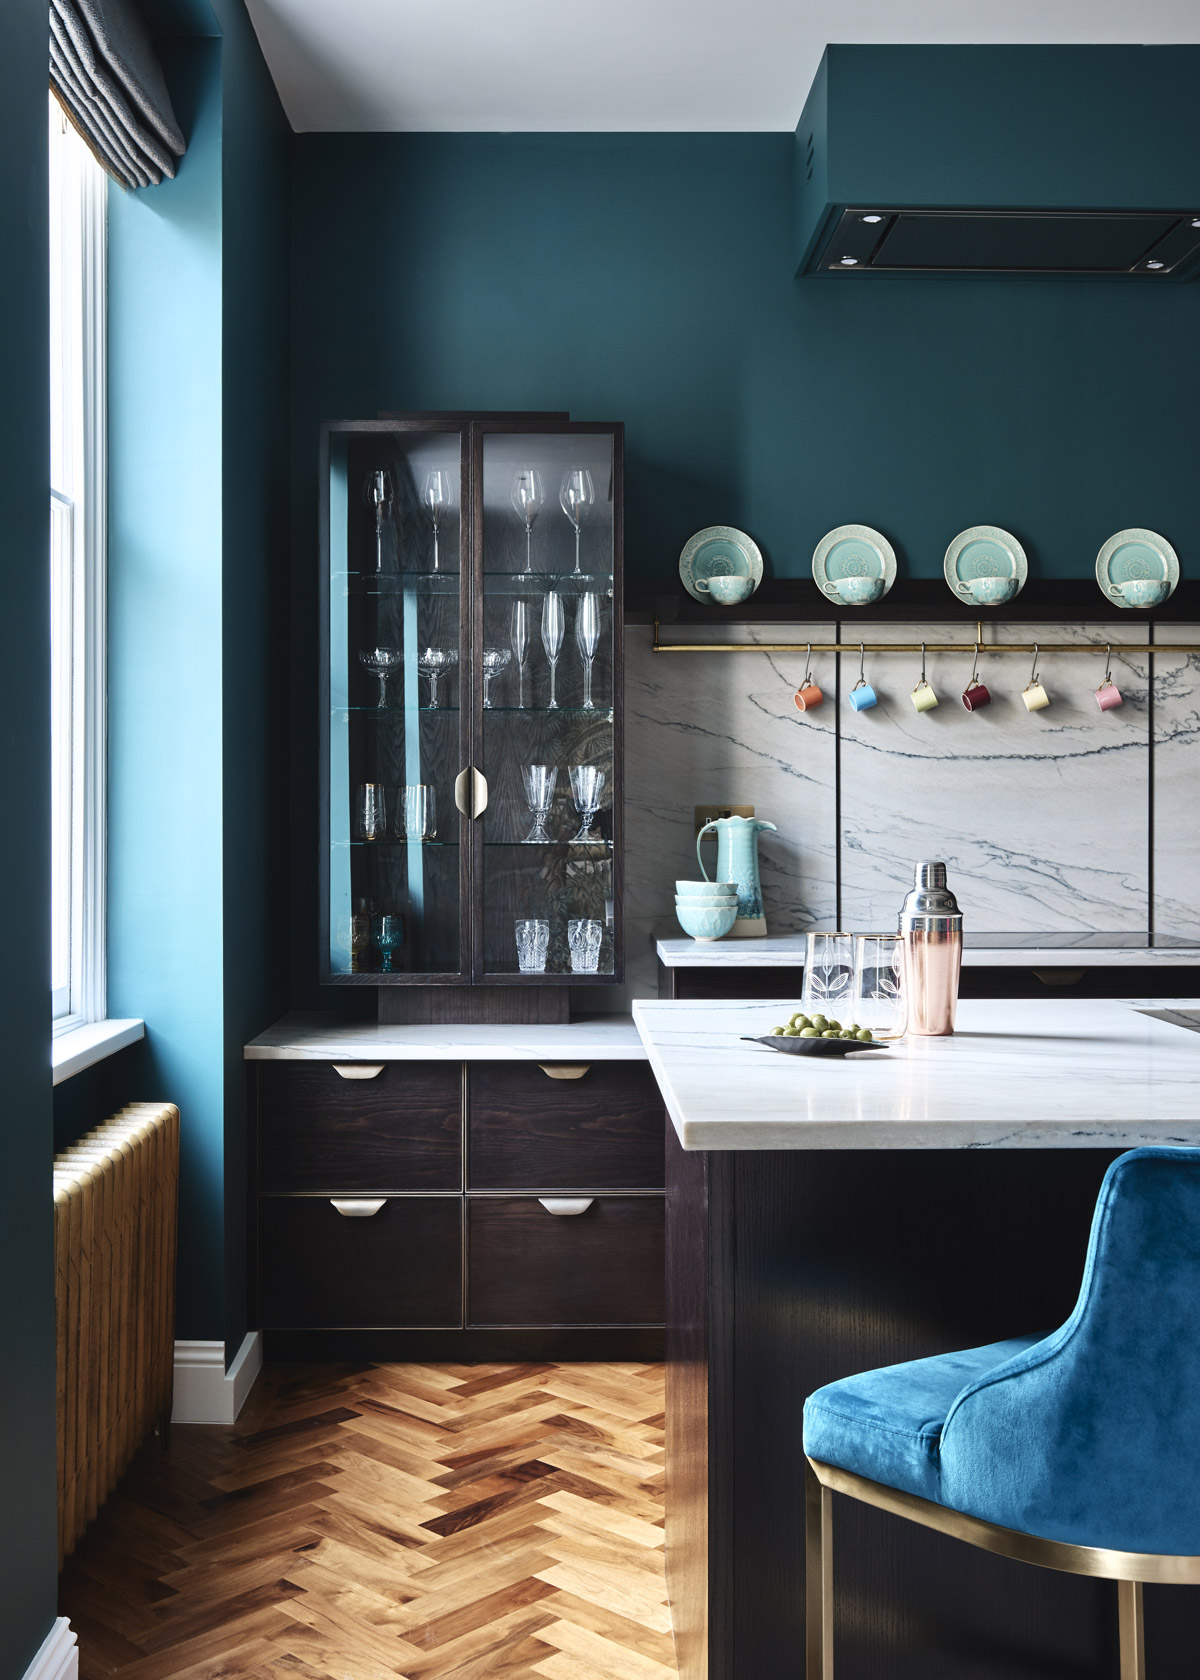 The glass unit with distinctive dropped-height worktop makes a display of beautiful glassware.